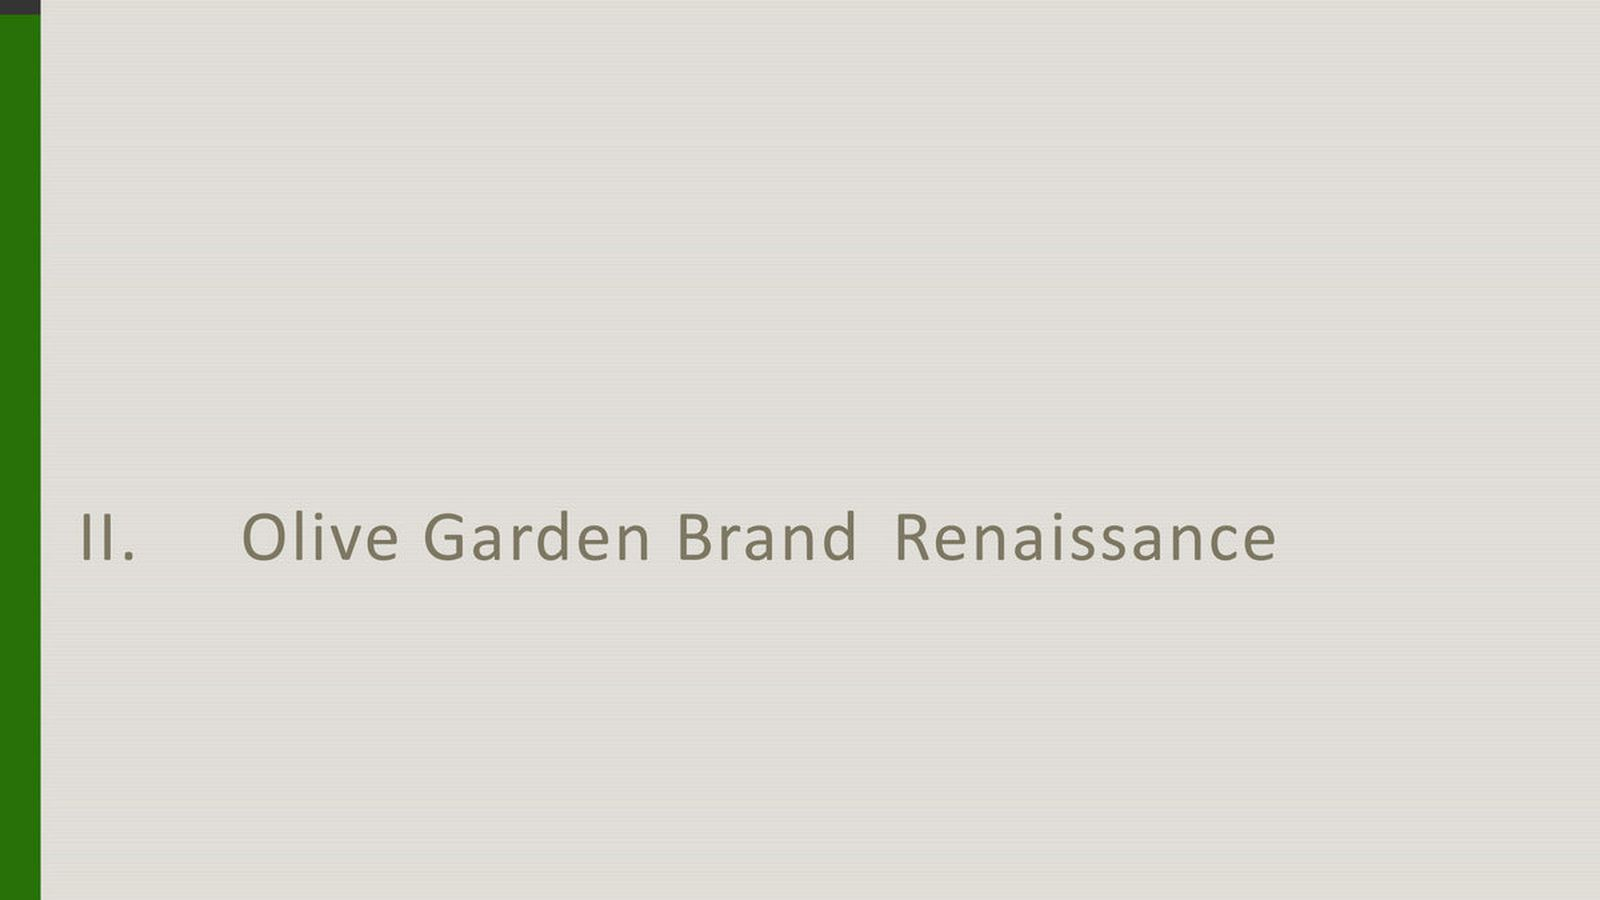 Olive Garden 39 S New Logo And Nationwide Remodels Part Of A 39 Brand Renaissance 39 Eater